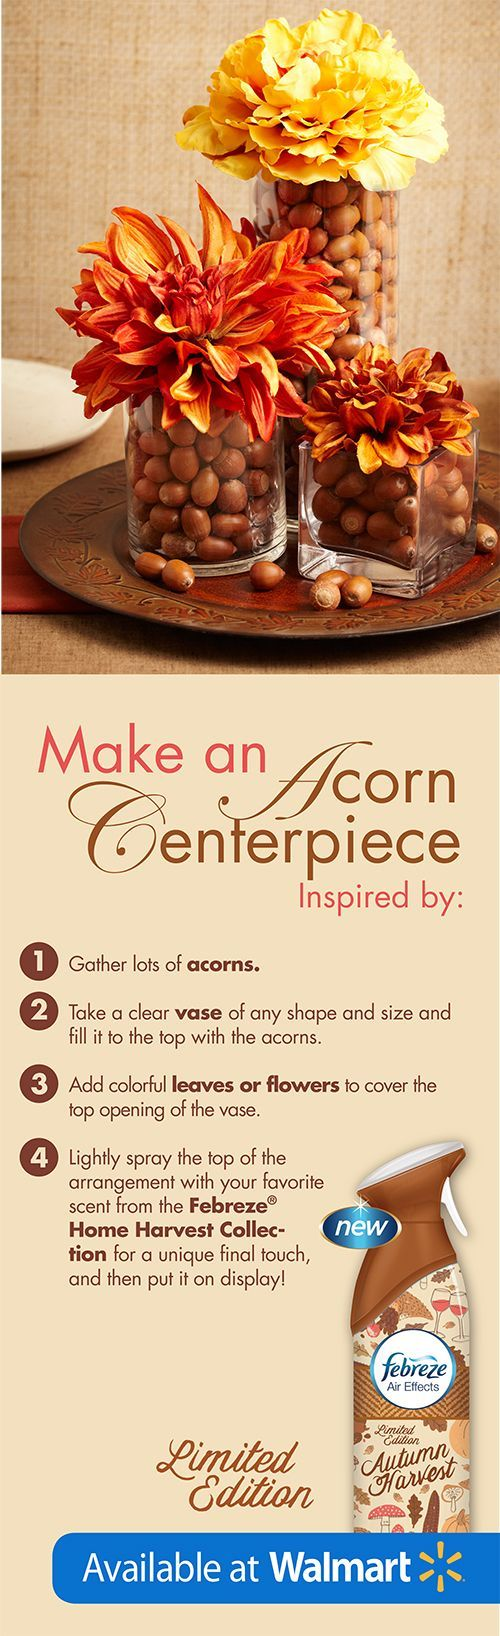 The perfect fall centerpiece in just 4 easy steps!